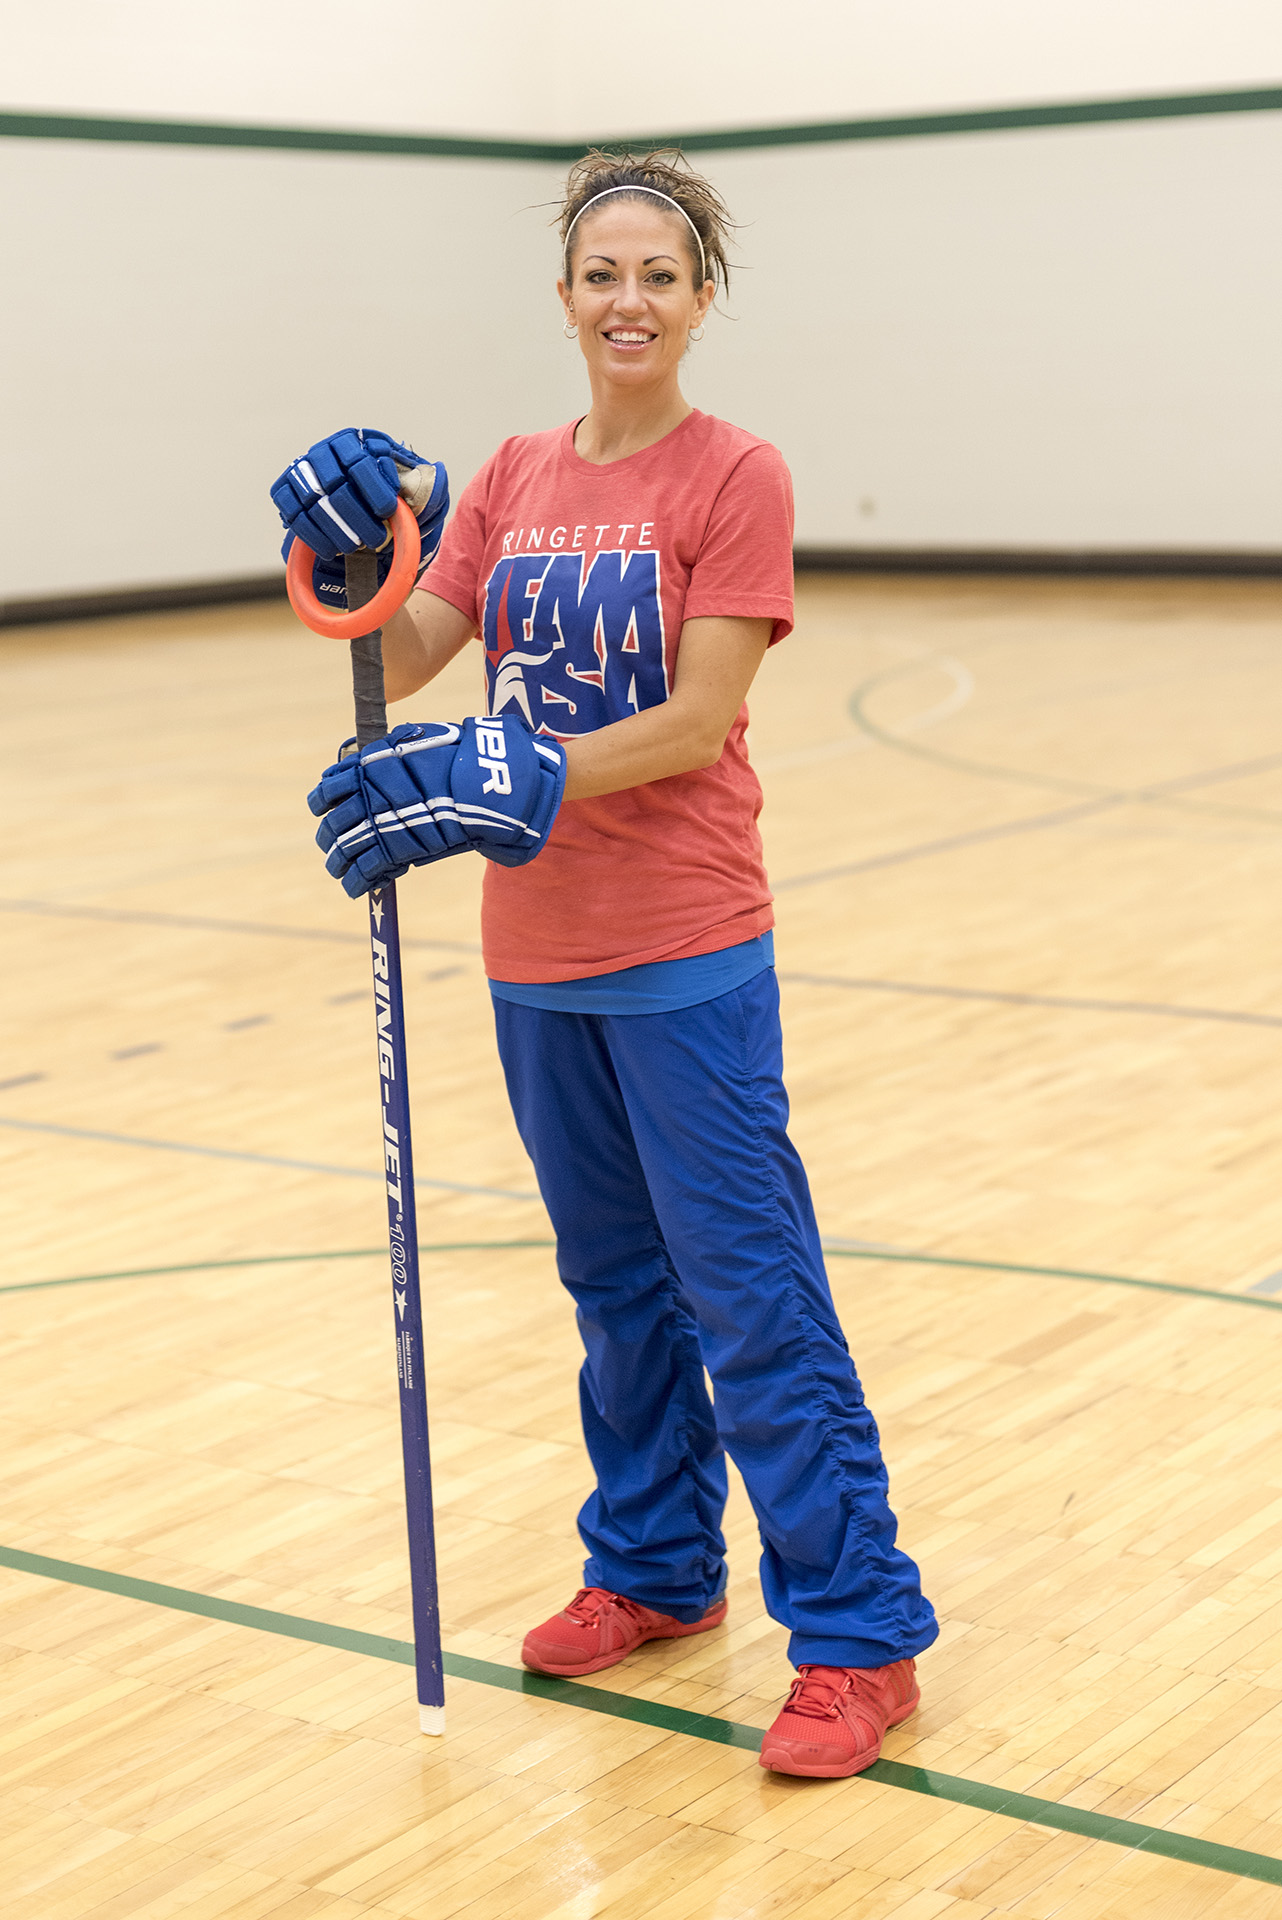 Renee Hoppe in gym with ringette gear